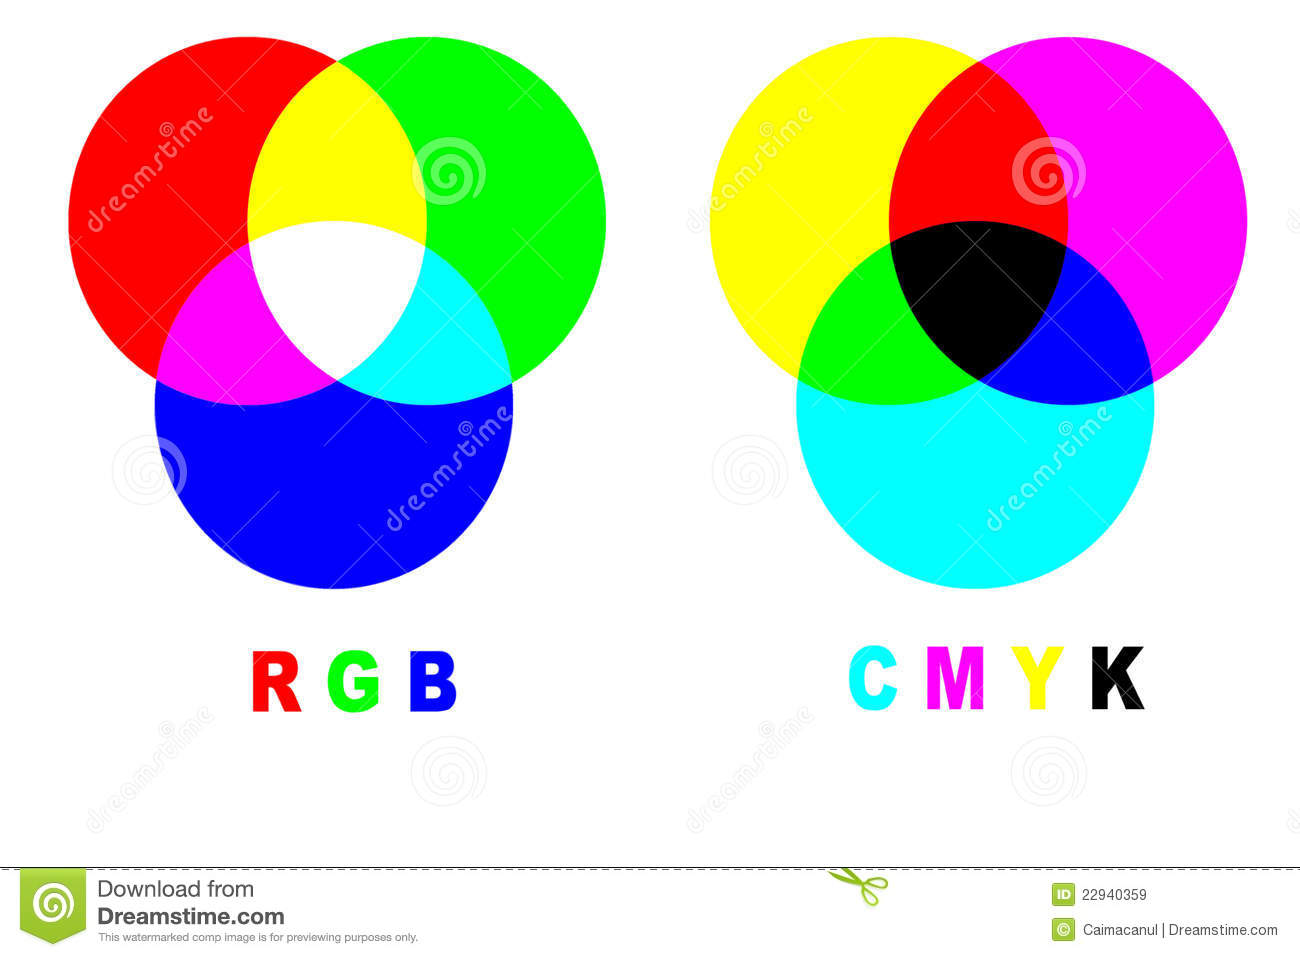 Mixing colors rgb vs cmyk stock illustration illustration of mixing colors rgb vs cmyk geenschuldenfo Image collections